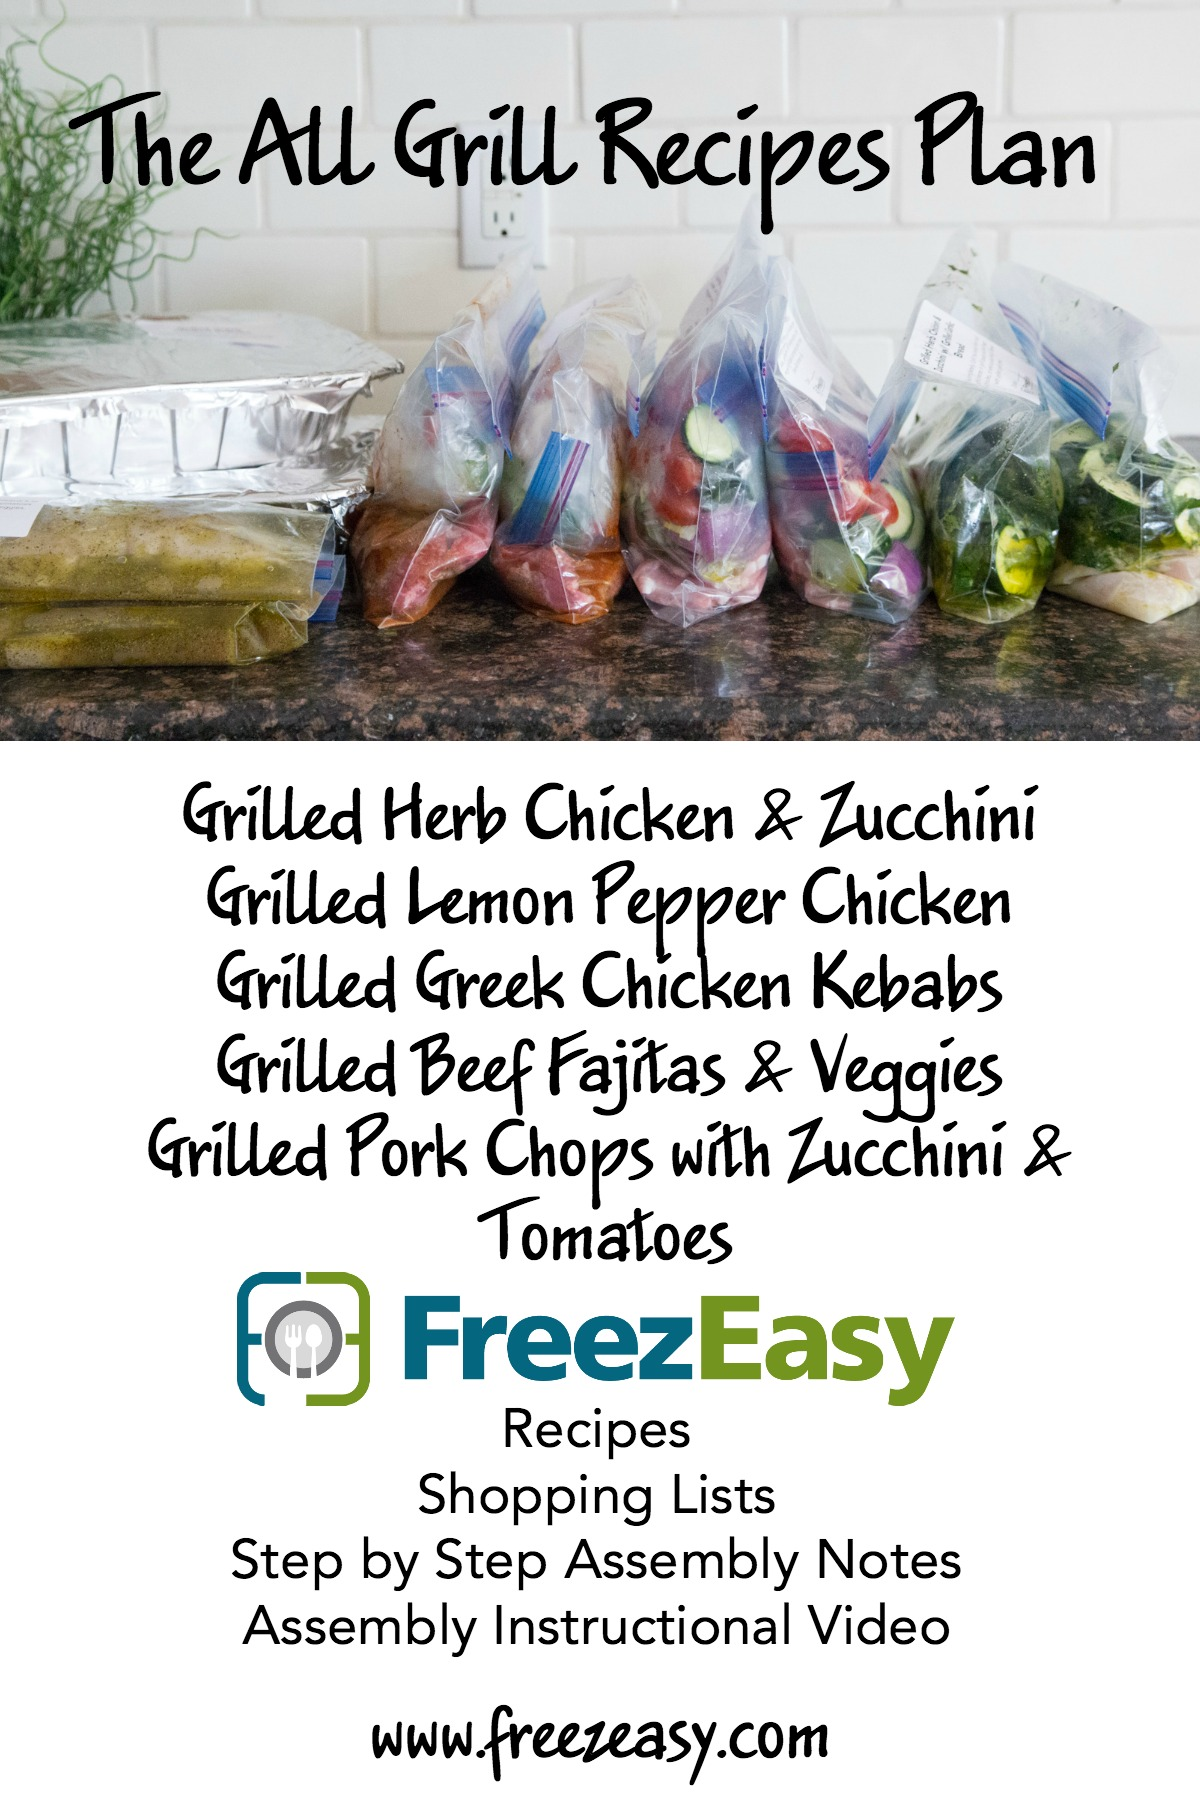 The All Grill Recipes Meal Plan from FreezEasy.com